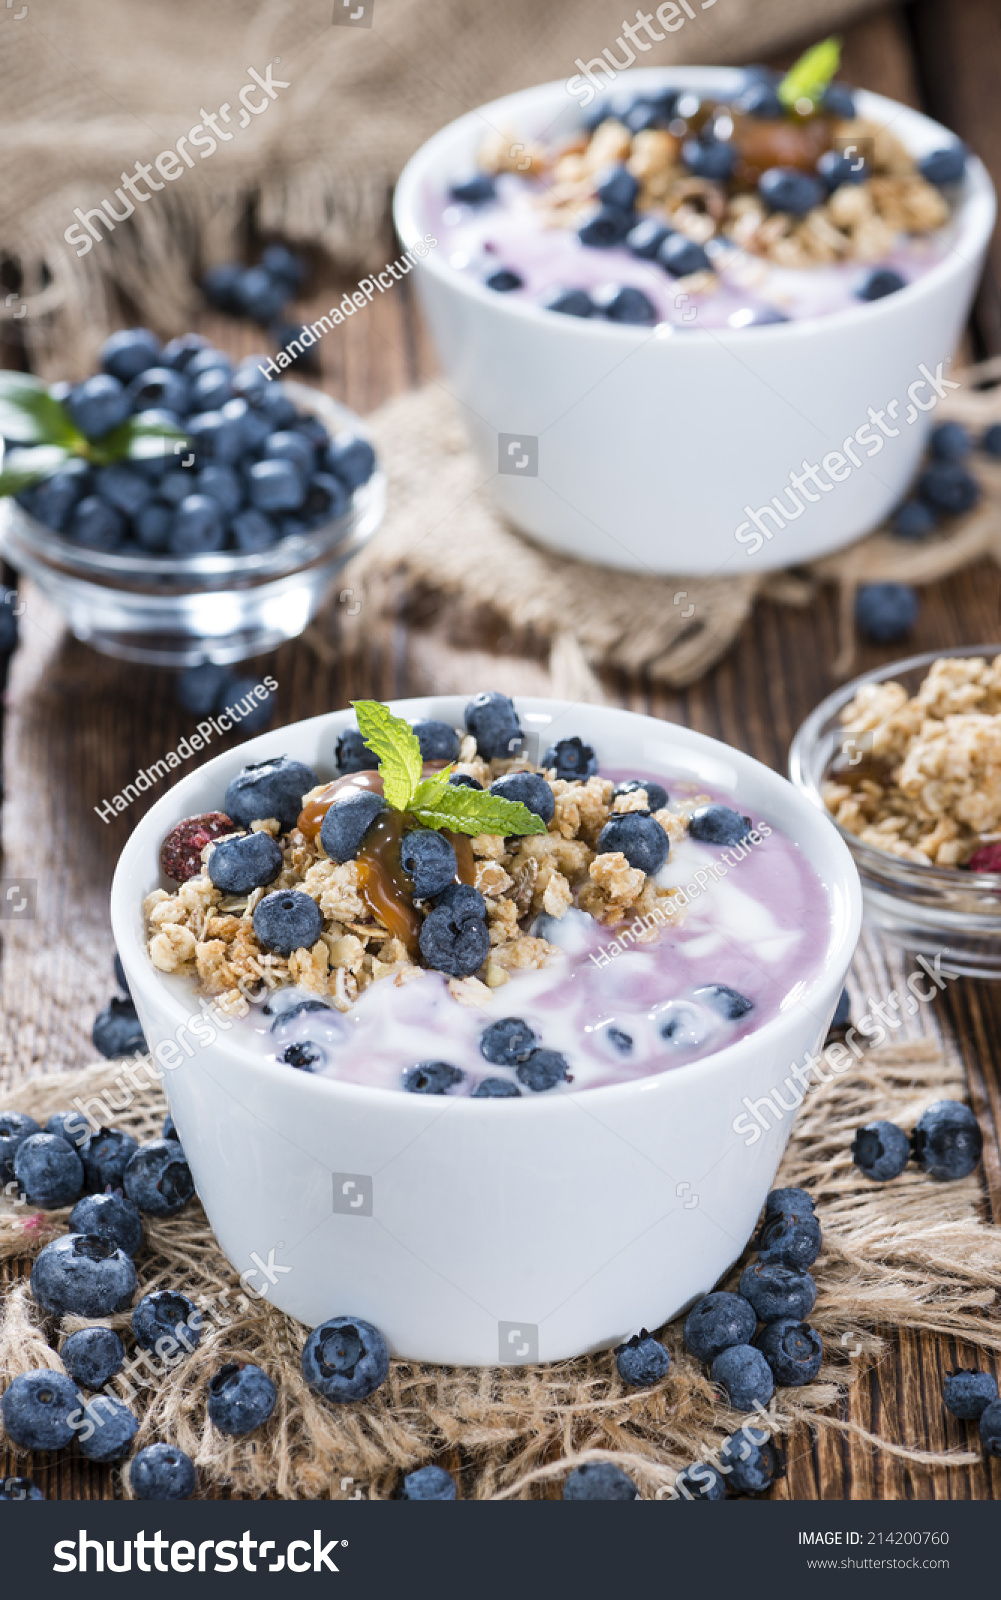 Bowl With Homemade Blueberry Yogurt And Caramel Sauce Stock Photo ...